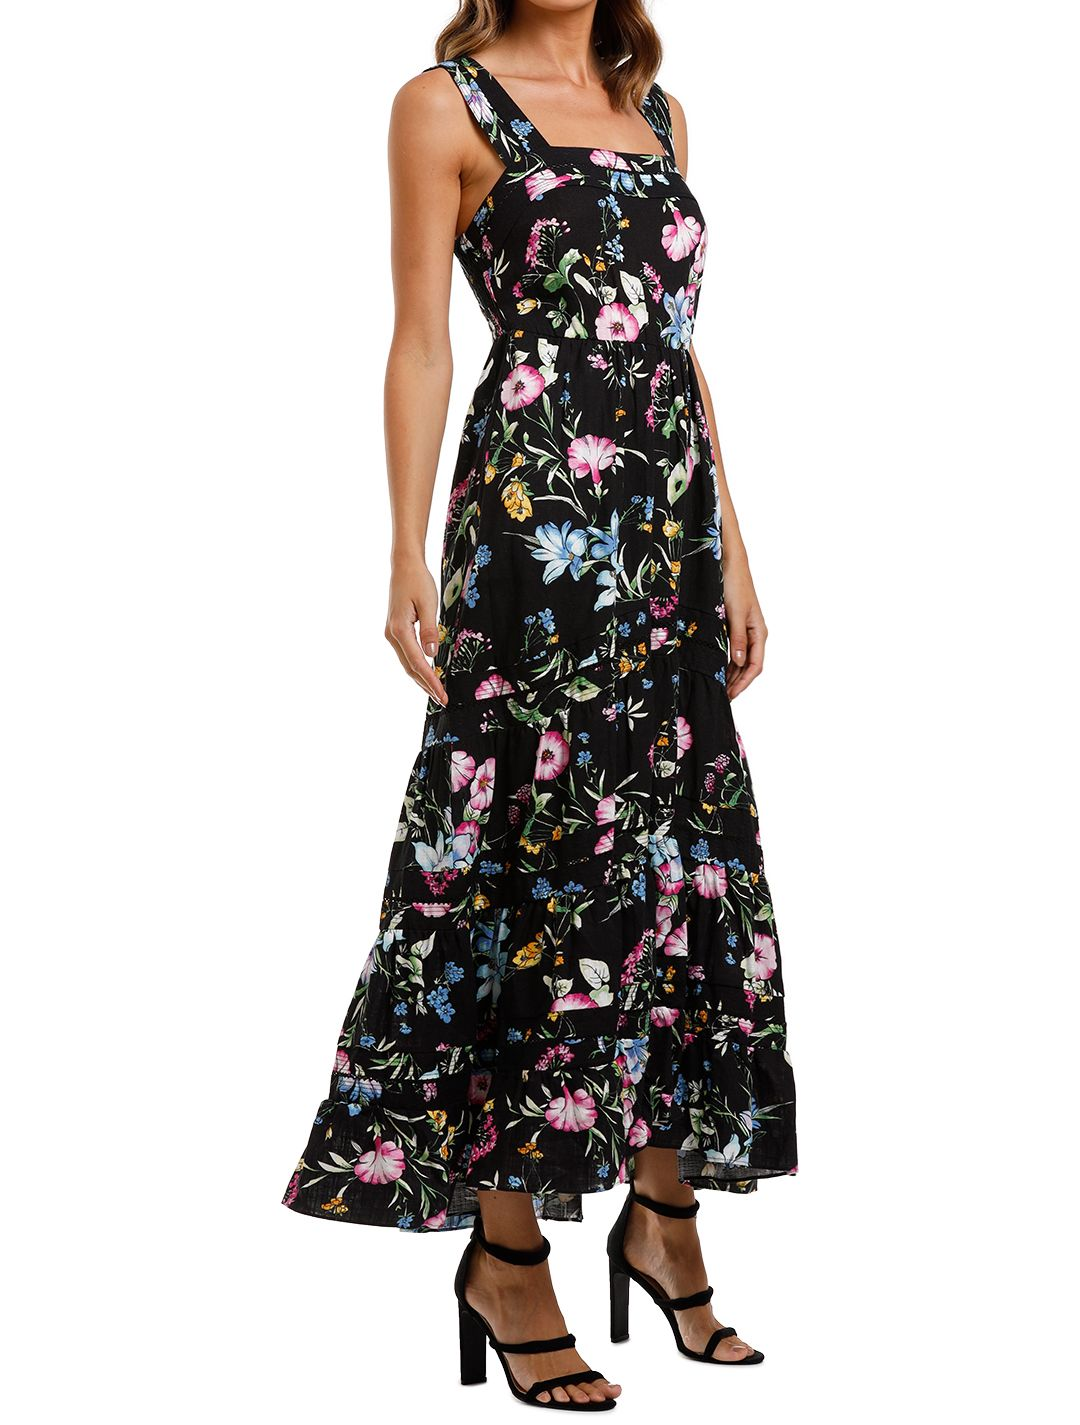 Misa LA Aurelia Dress tiered Maxi